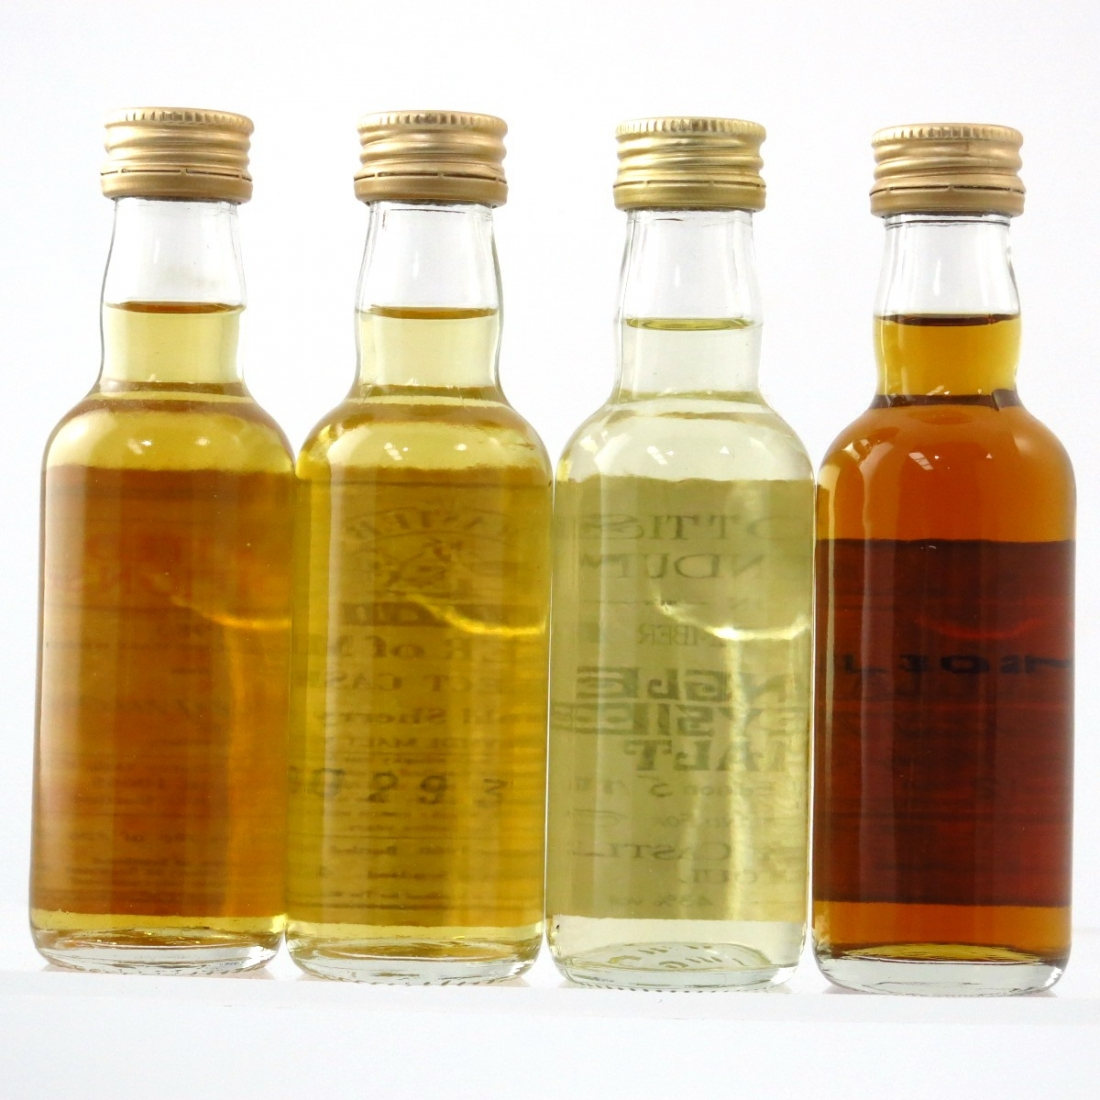 Speyside Single Malts Miniatures 4 x 5cl / including Macallan 12 Year Old